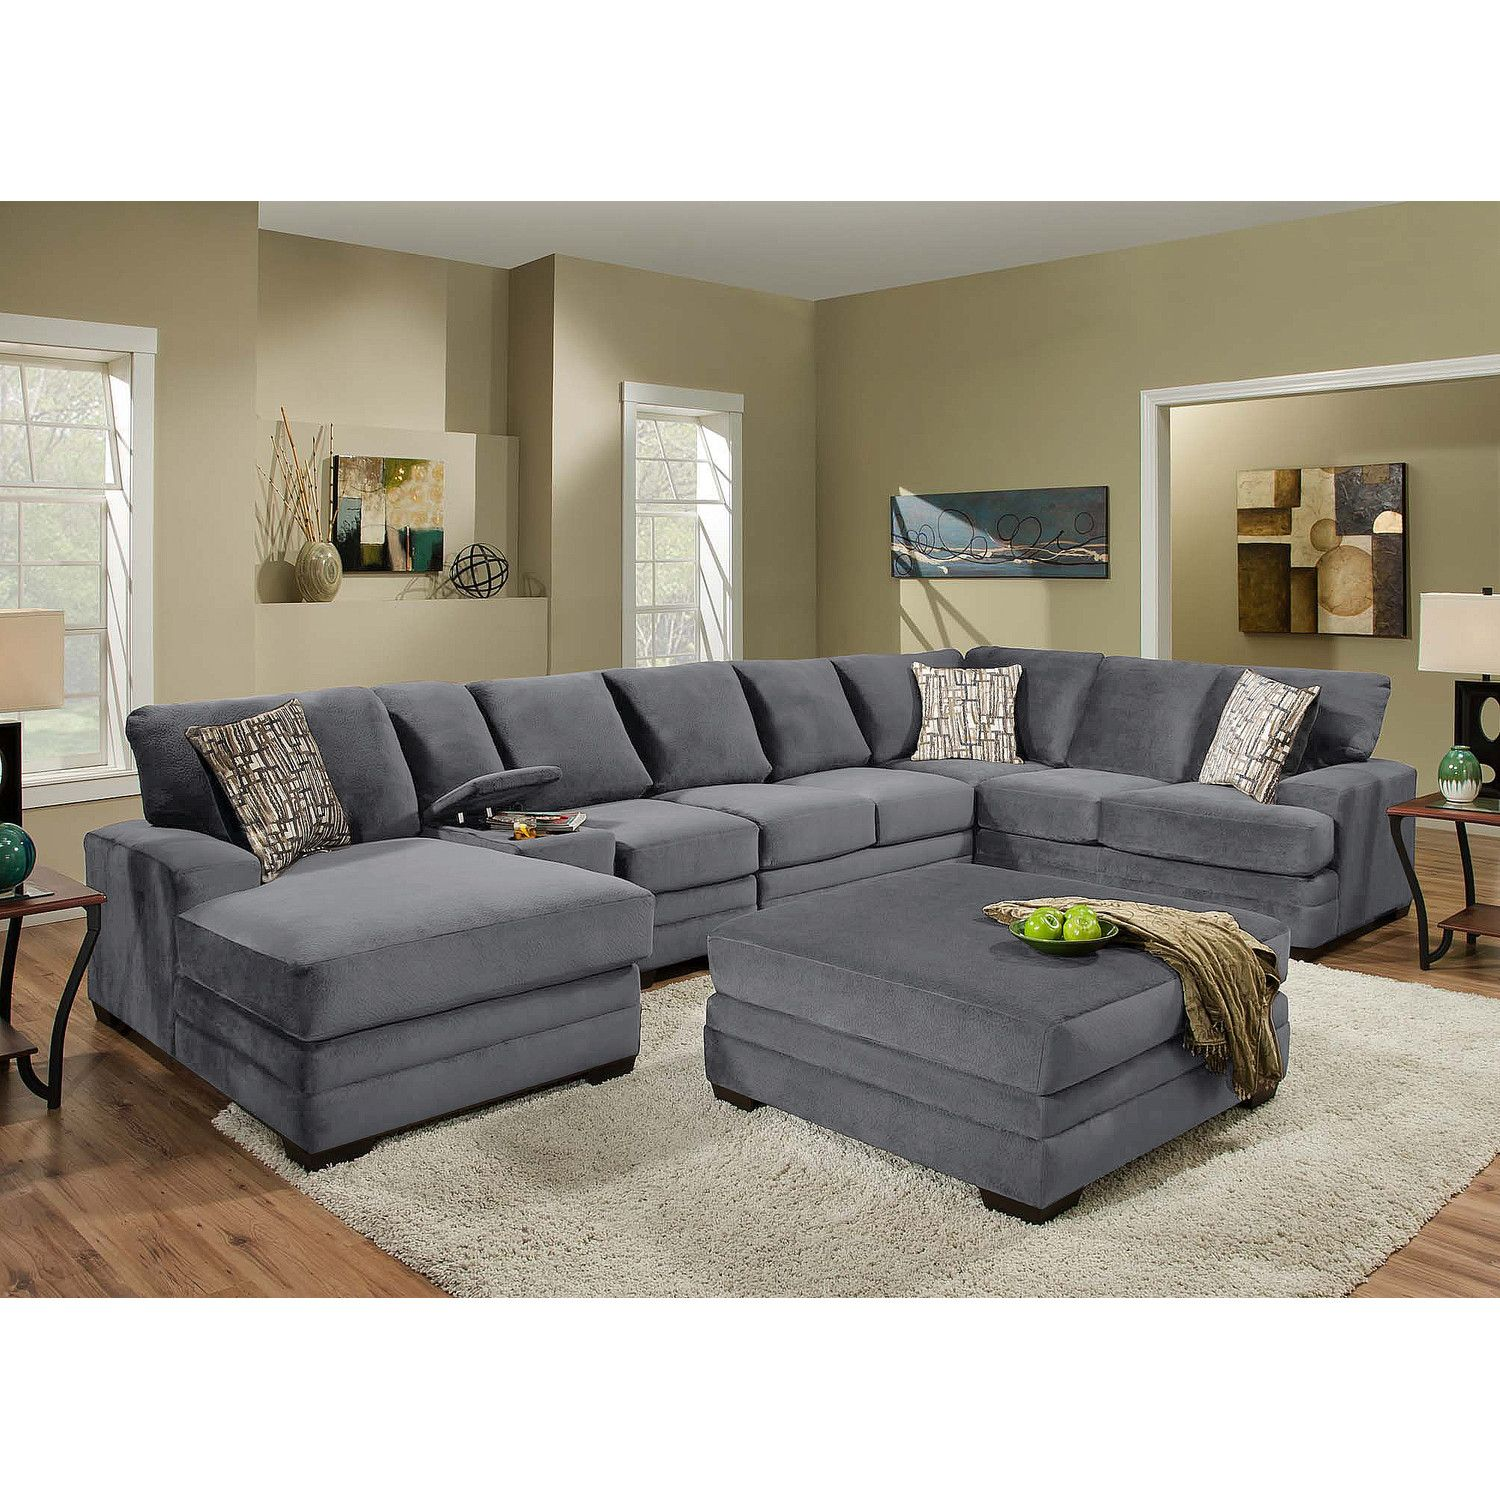 Best Jerome S Corduroy Couch Google Search Home Decor 400 x 300